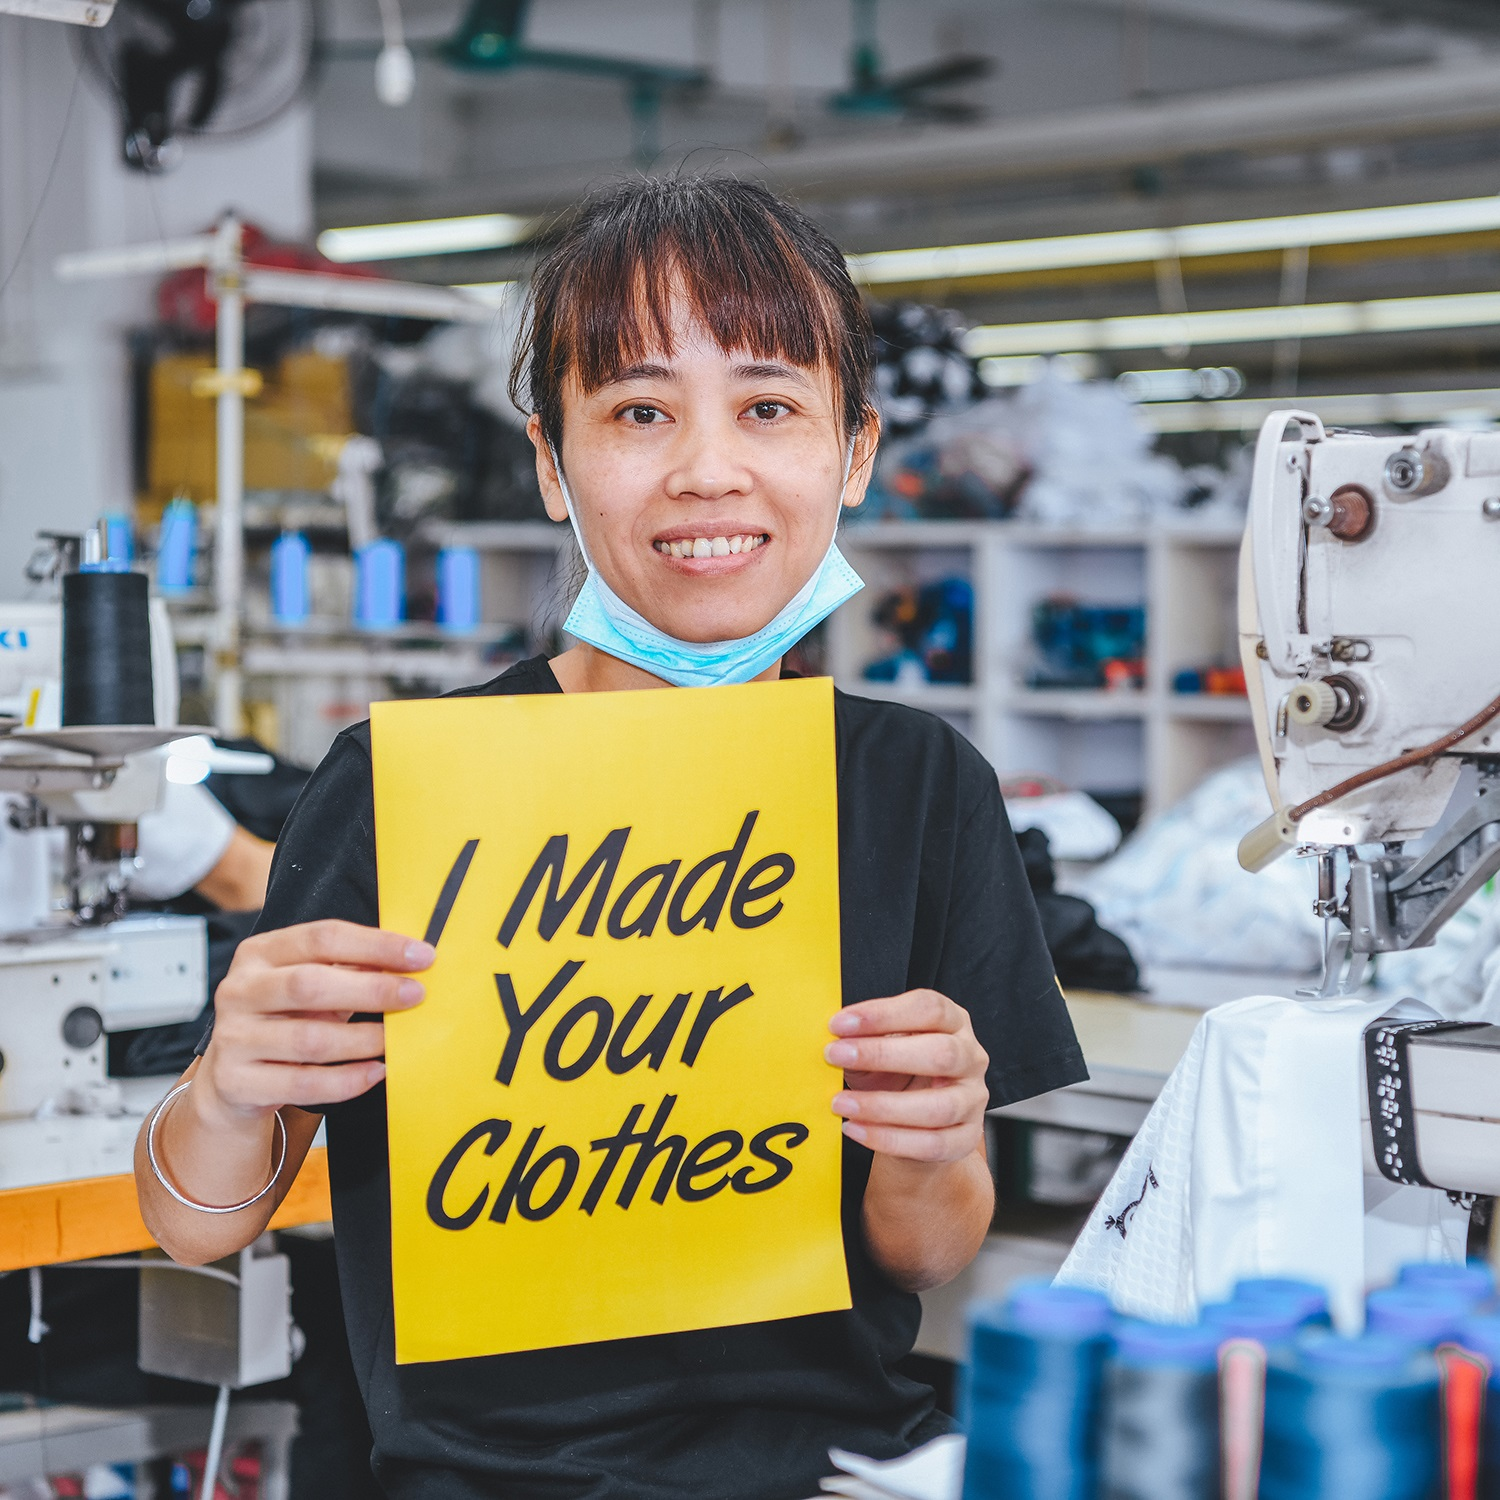 who made my clothes campaign